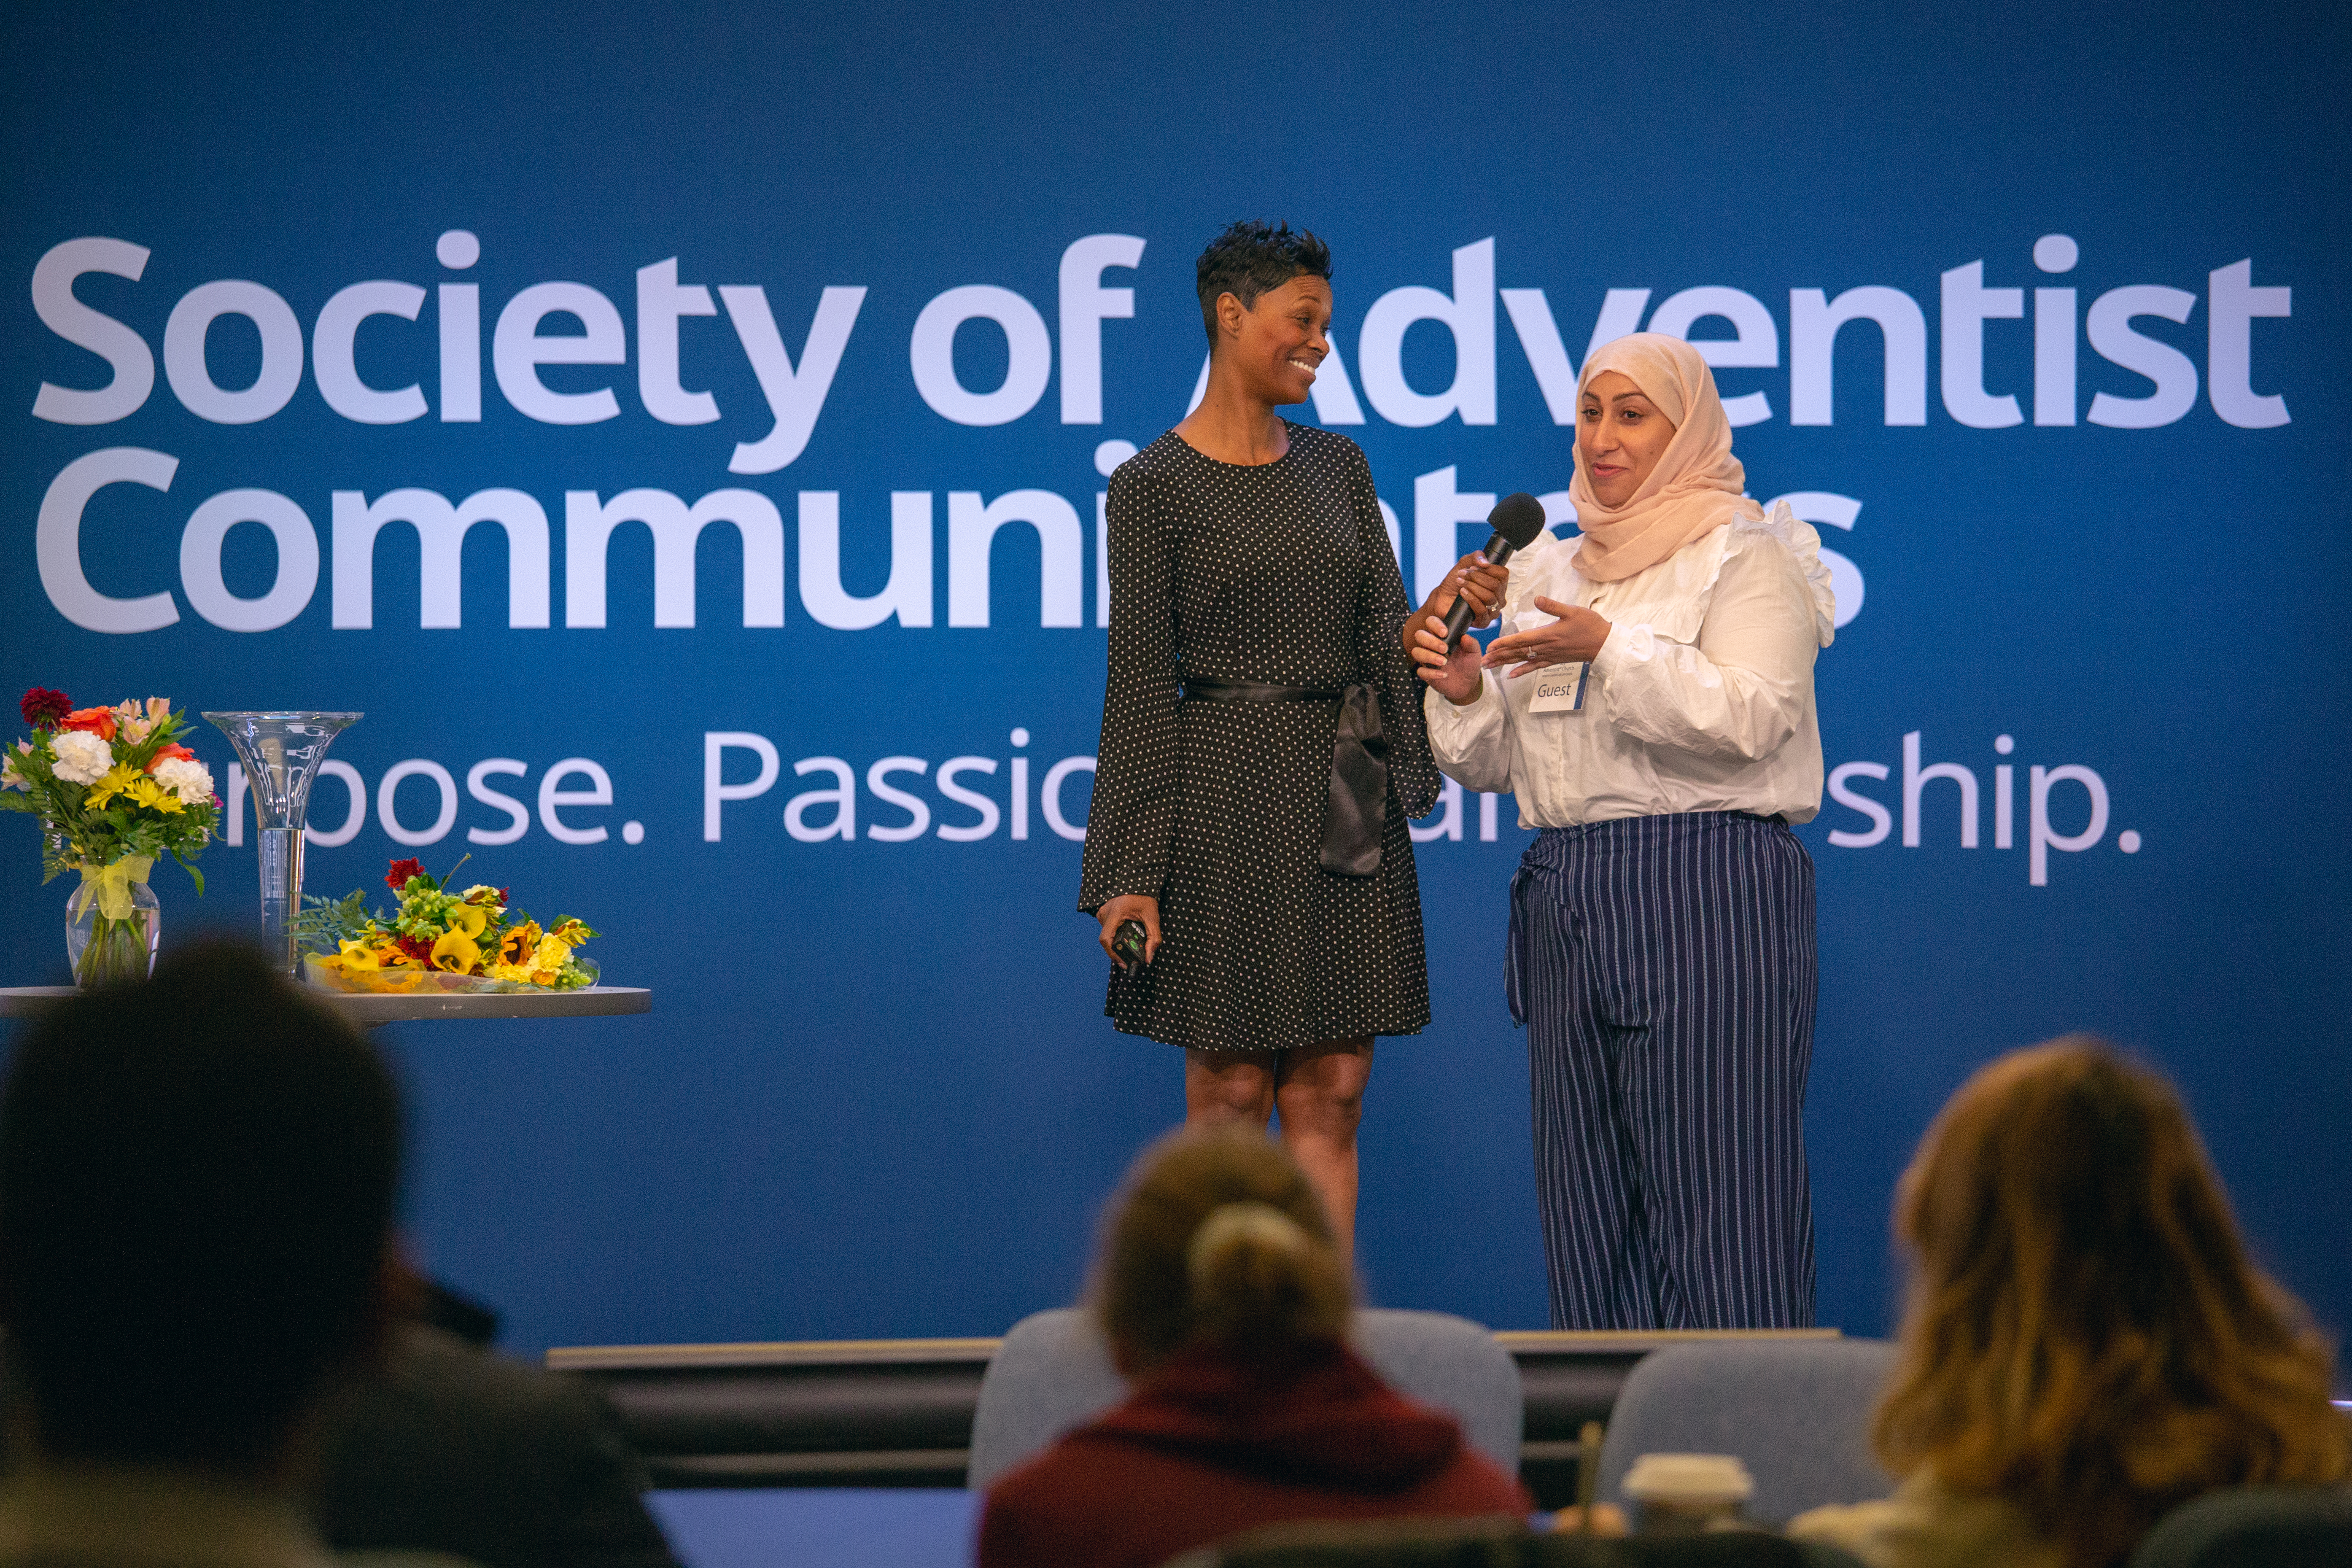 Jarilyn Conner, communication professor for Washington Adventist University, gives her student from Saudi Arabia the platform to describe her experience at the school.